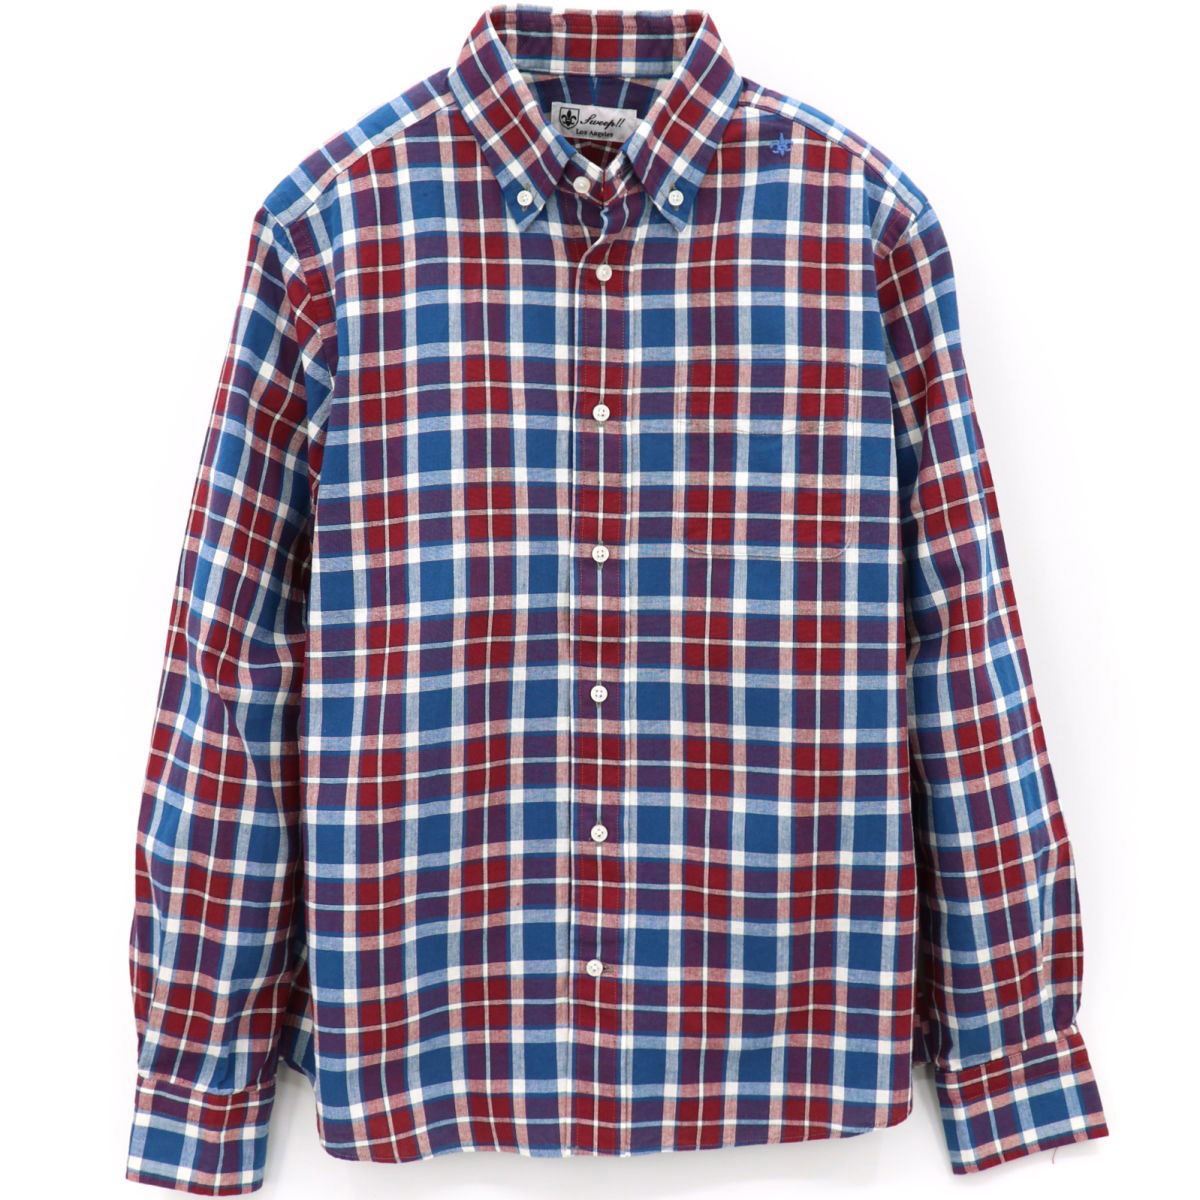 CHECK(BLUE×RED)